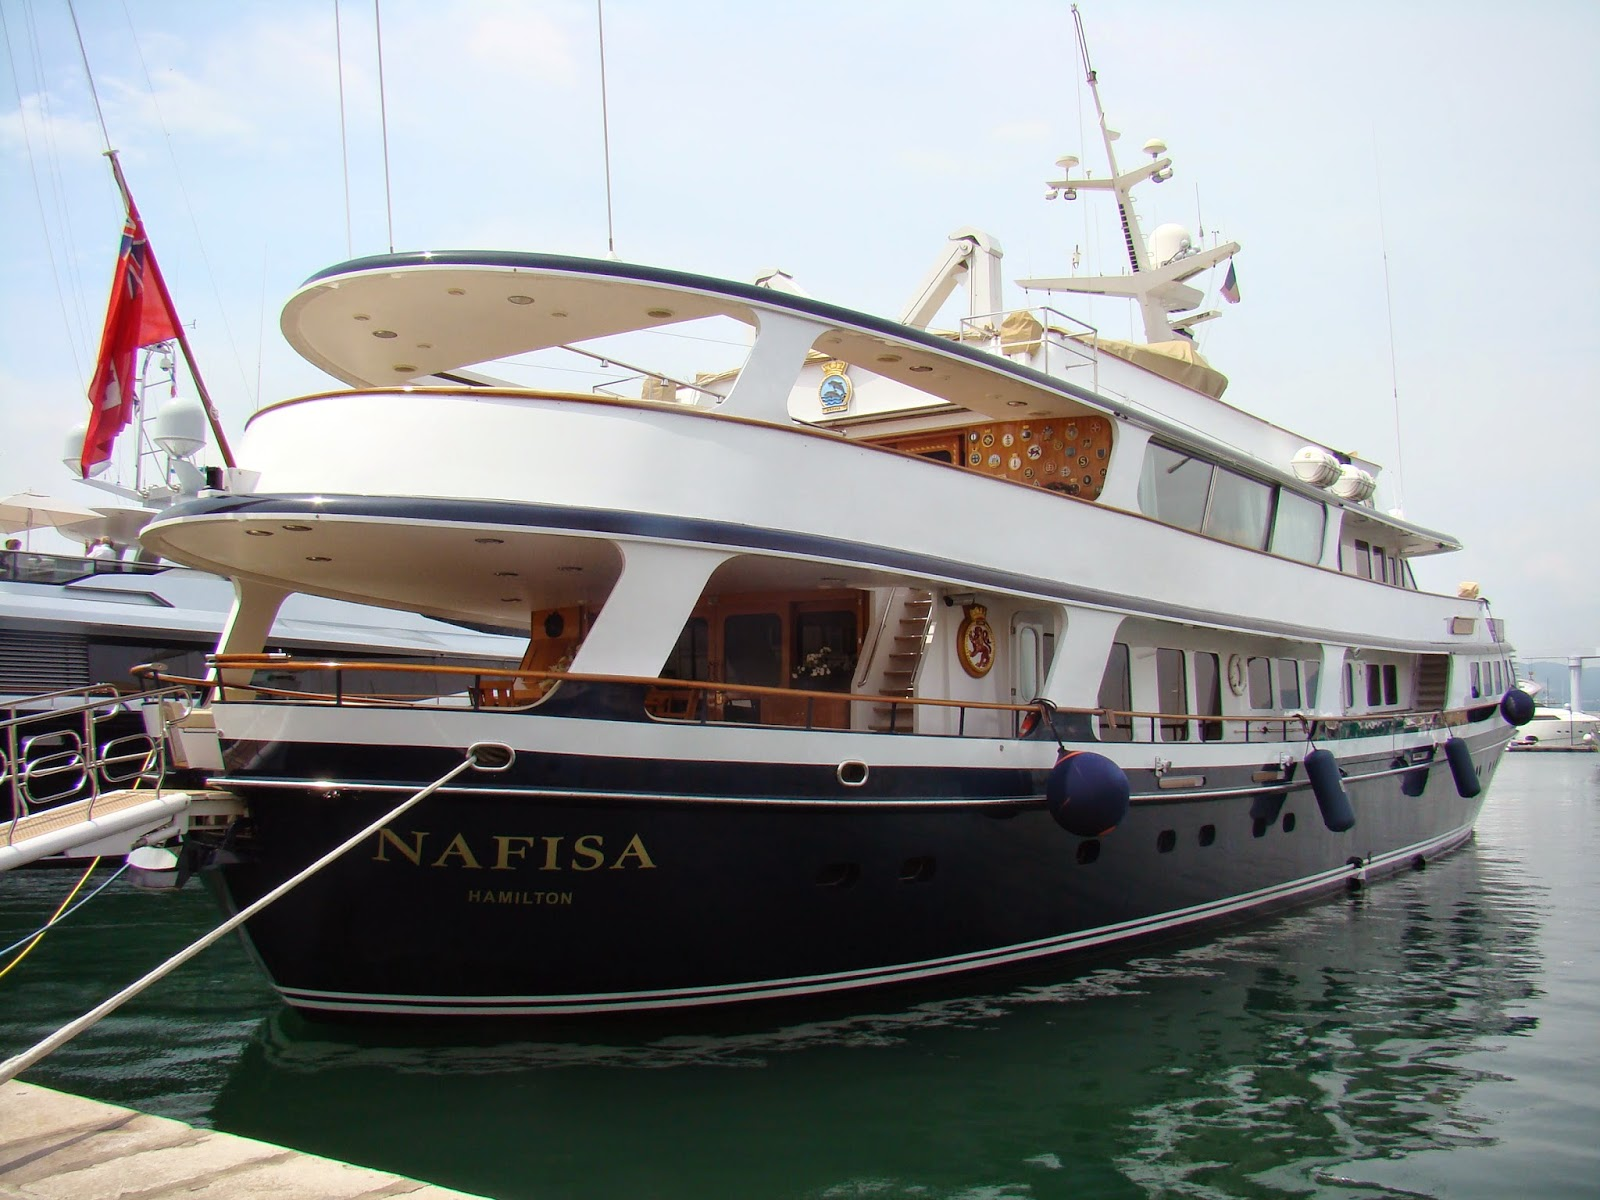 Superyacht Nafisa, owned by Mohammed Abdul Latif Jameel